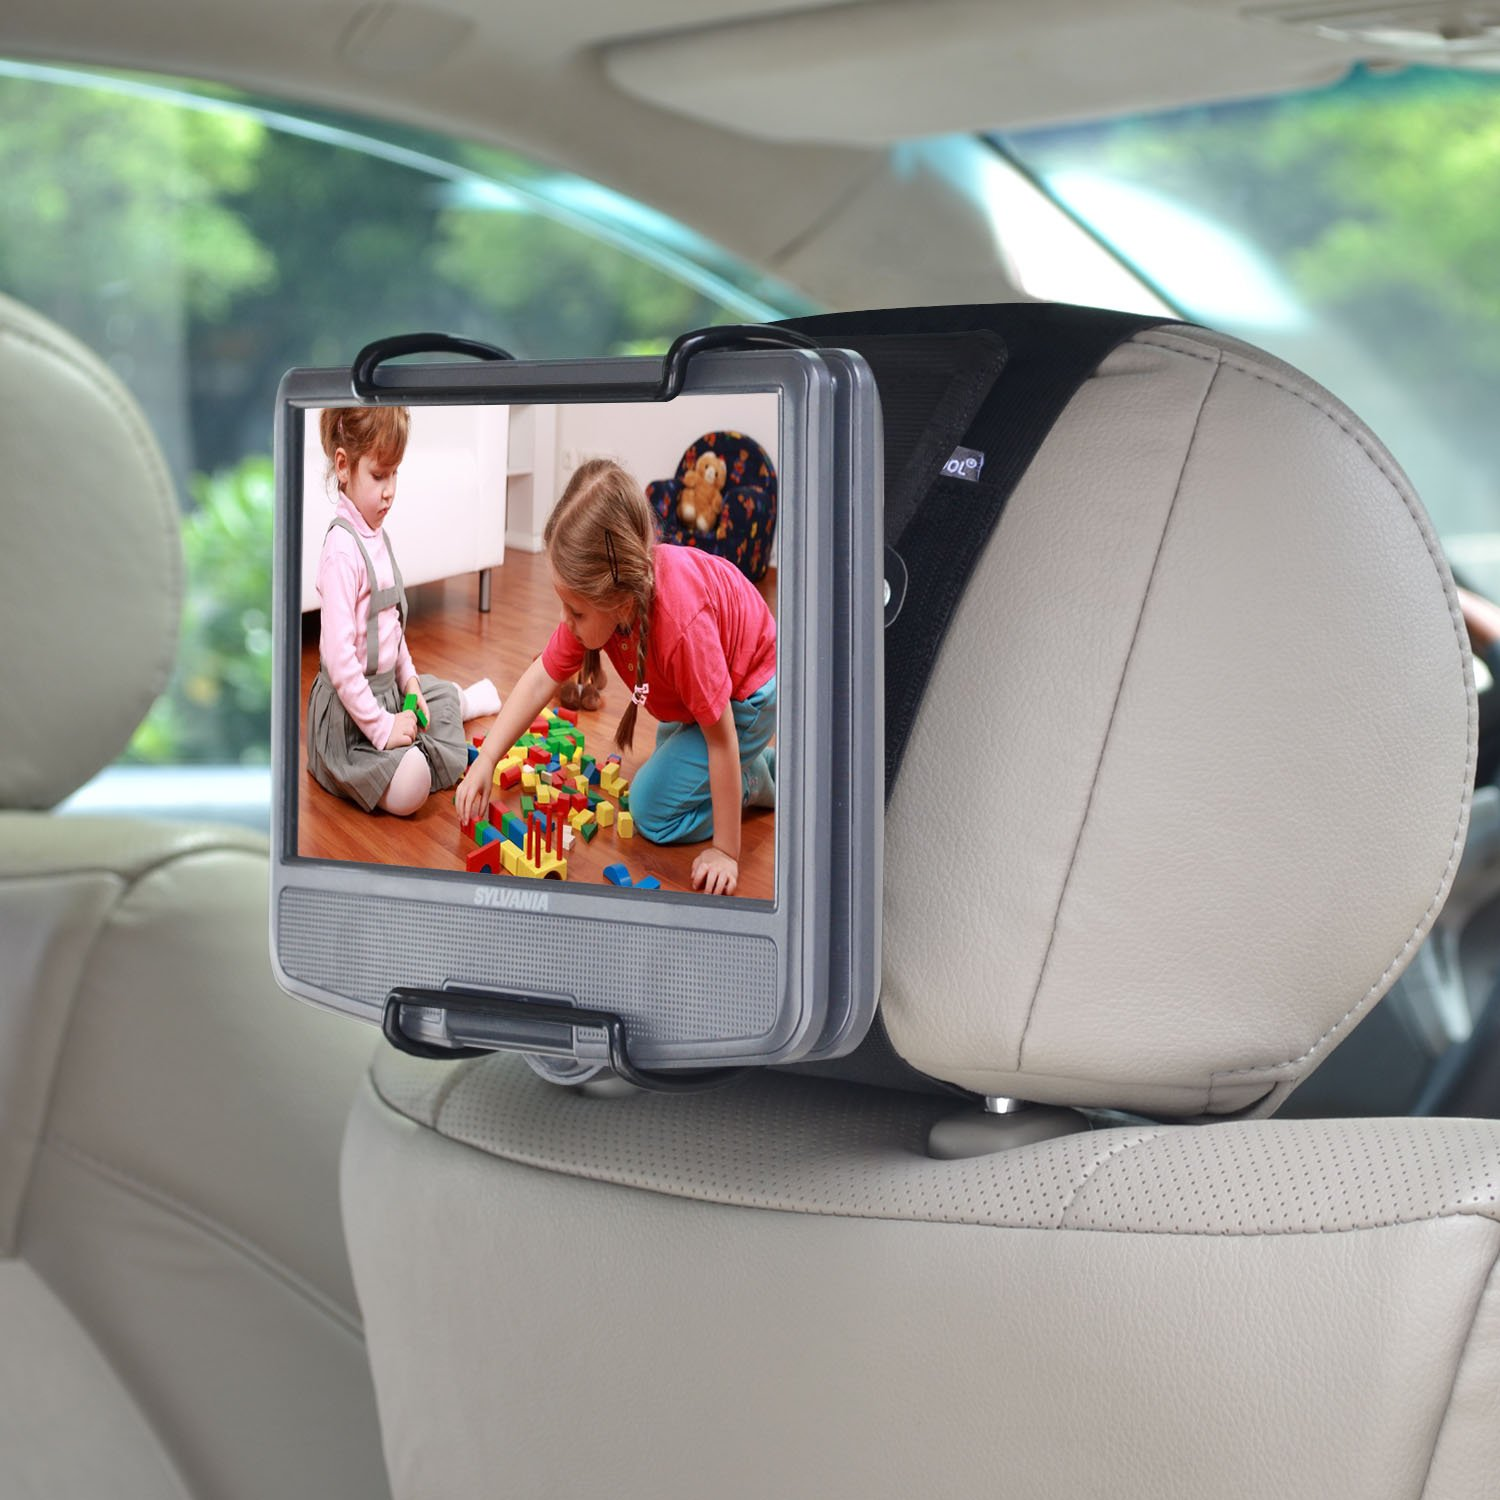 WANPOOL Portable DVD Player Car Headrest Mount with Angle-Adjustable Clamp, for use with Swivel Screen Style Portable DVD Players (DVD Player is not Included) 141[並行輸入] B073TTSMB2